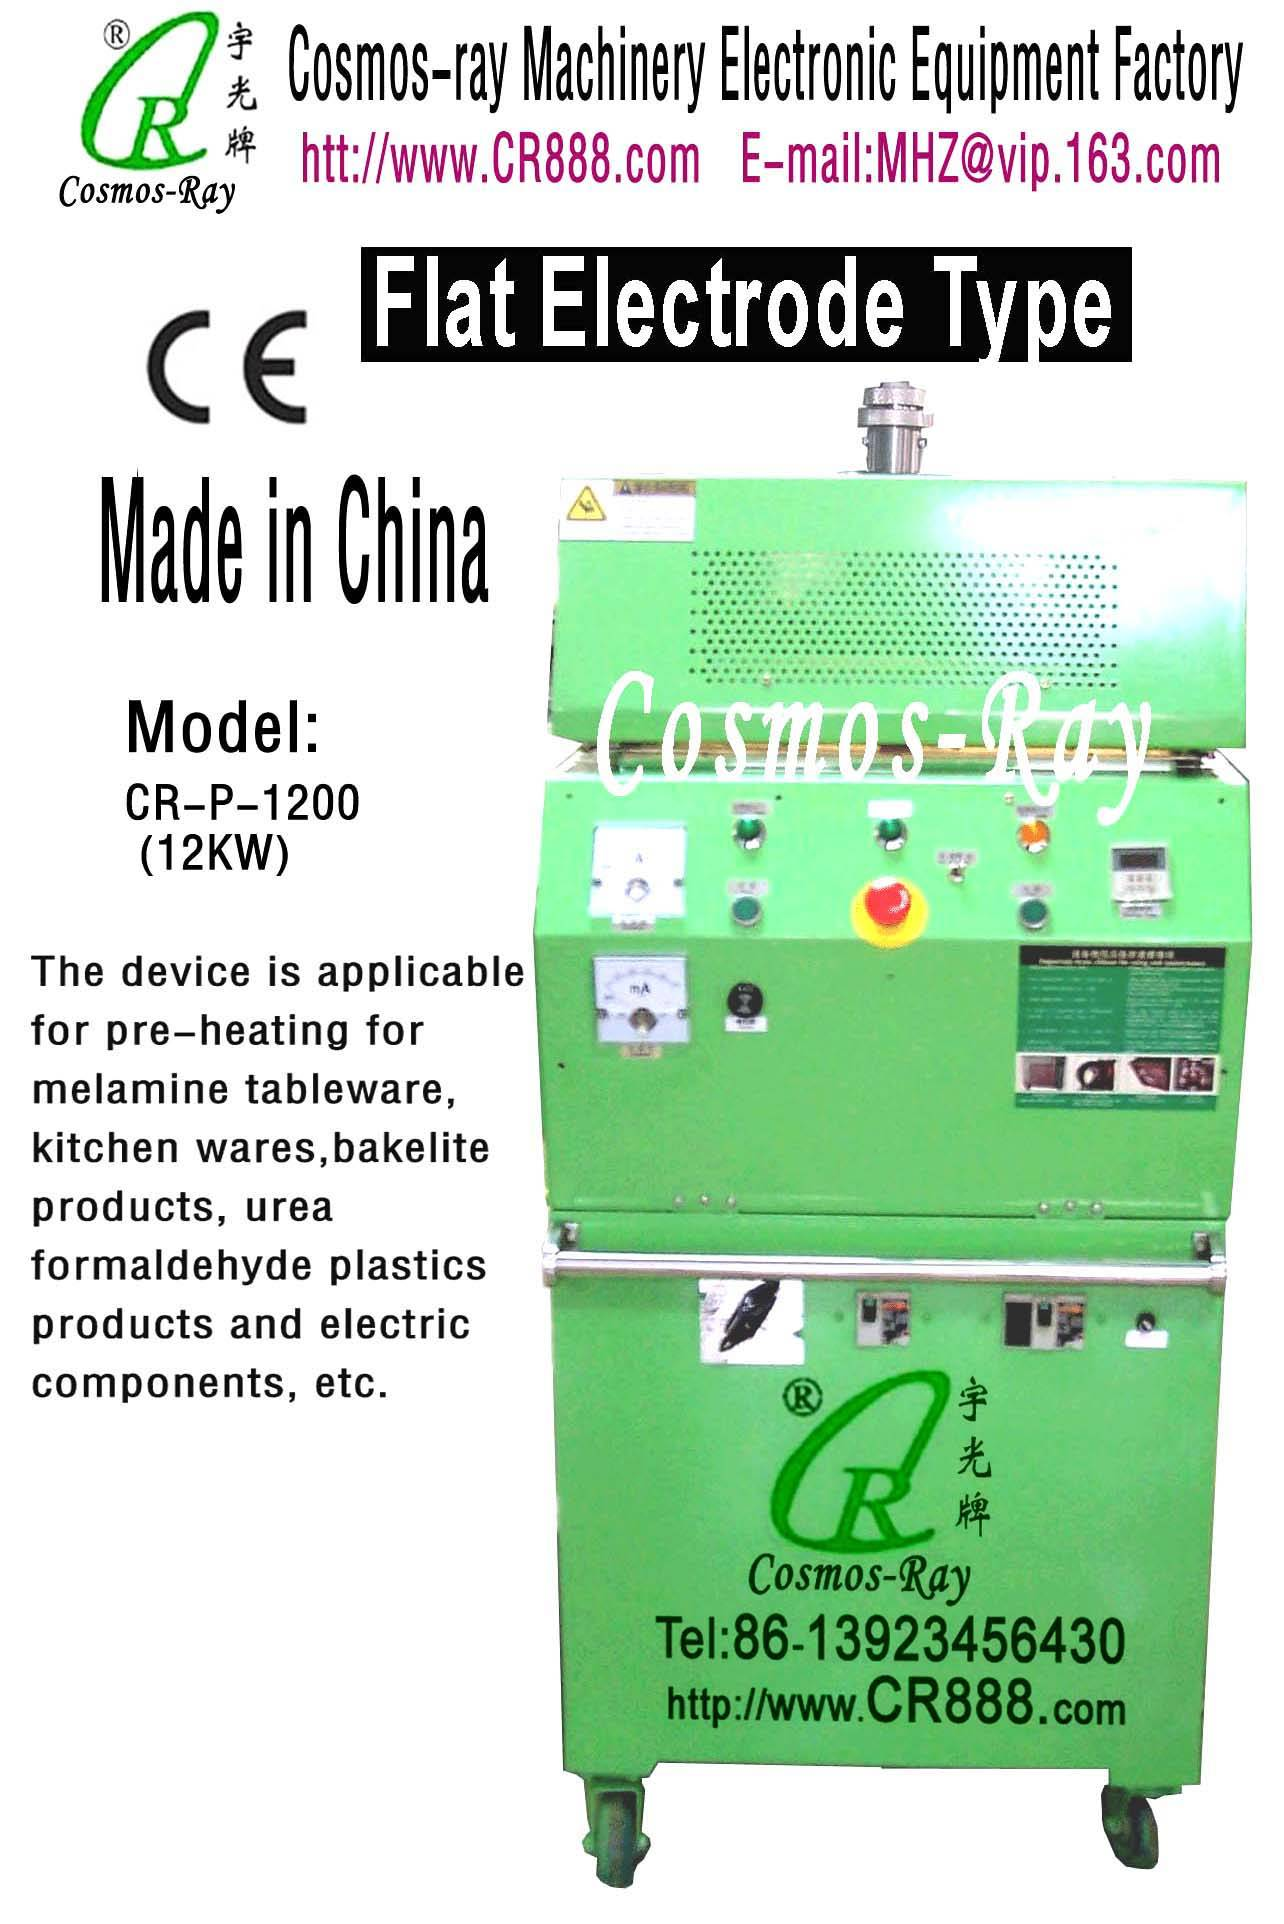 High Frequency Pre-heater (12KW Flat electrode type)